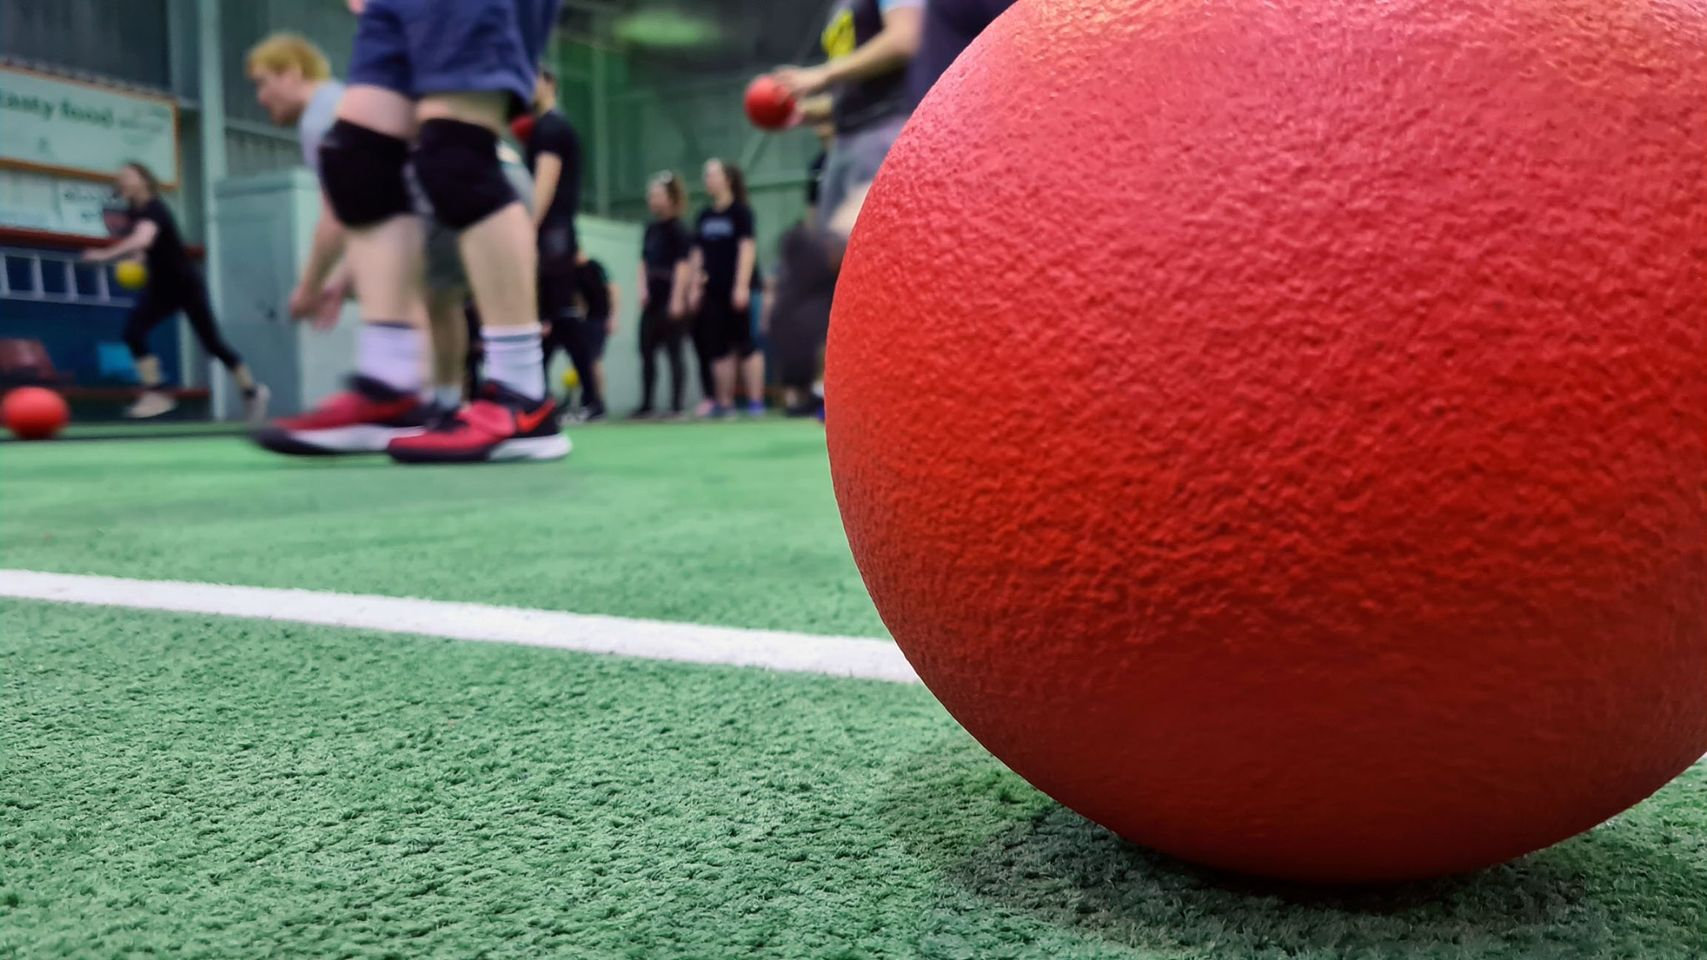 Tuesday Drop-in Dodgeball